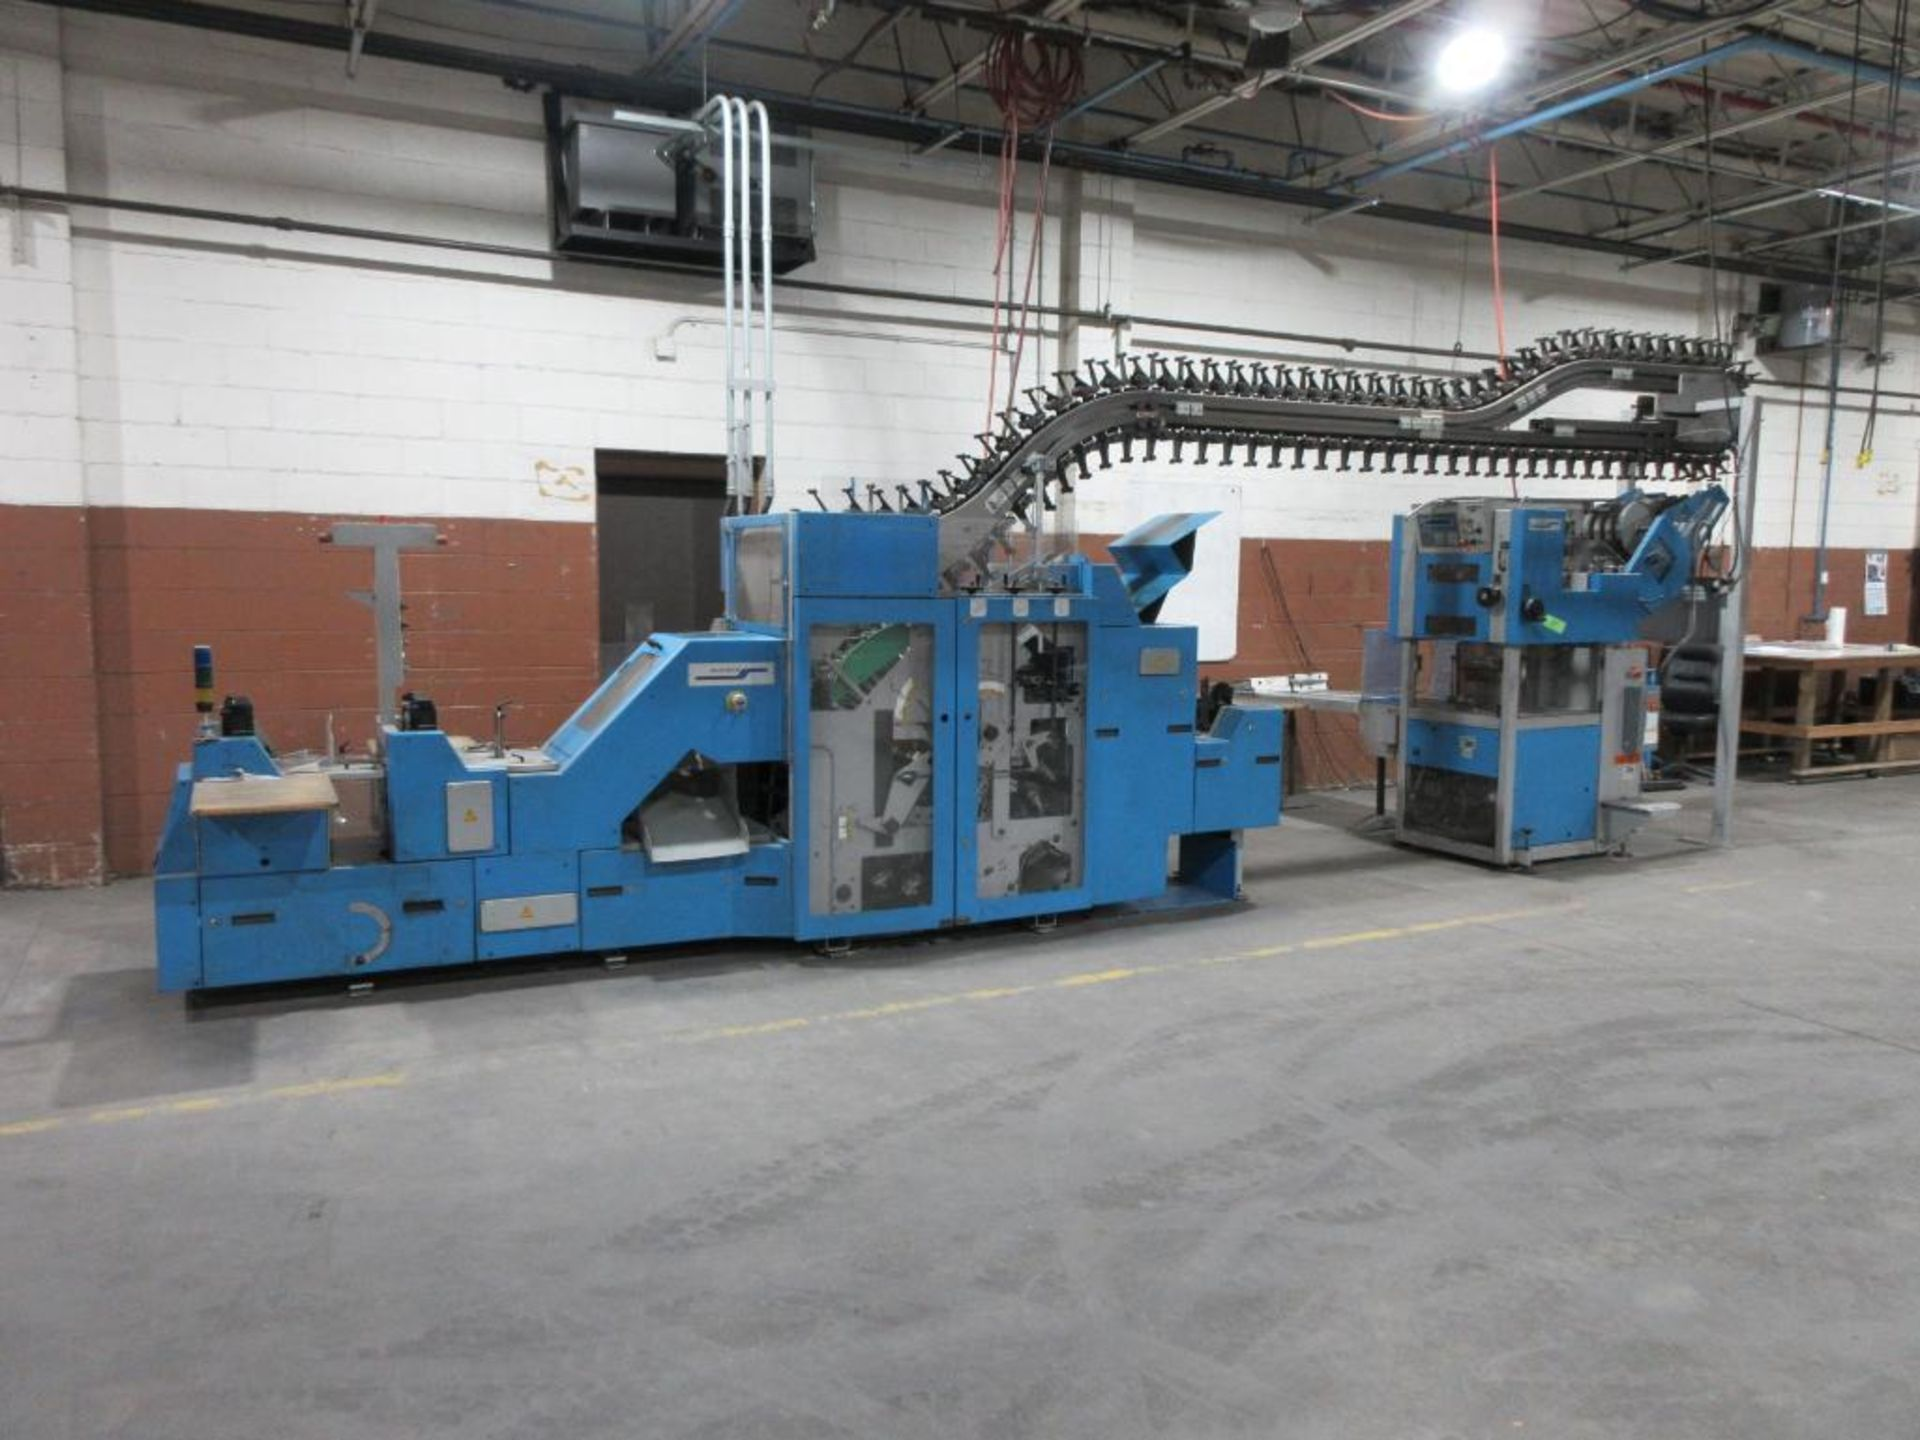 2005 Muller Martini Alphaliner inserter model 7500.0403, minimum pages 4 (tabloid, broadsheet, magaz - Image 2 of 15